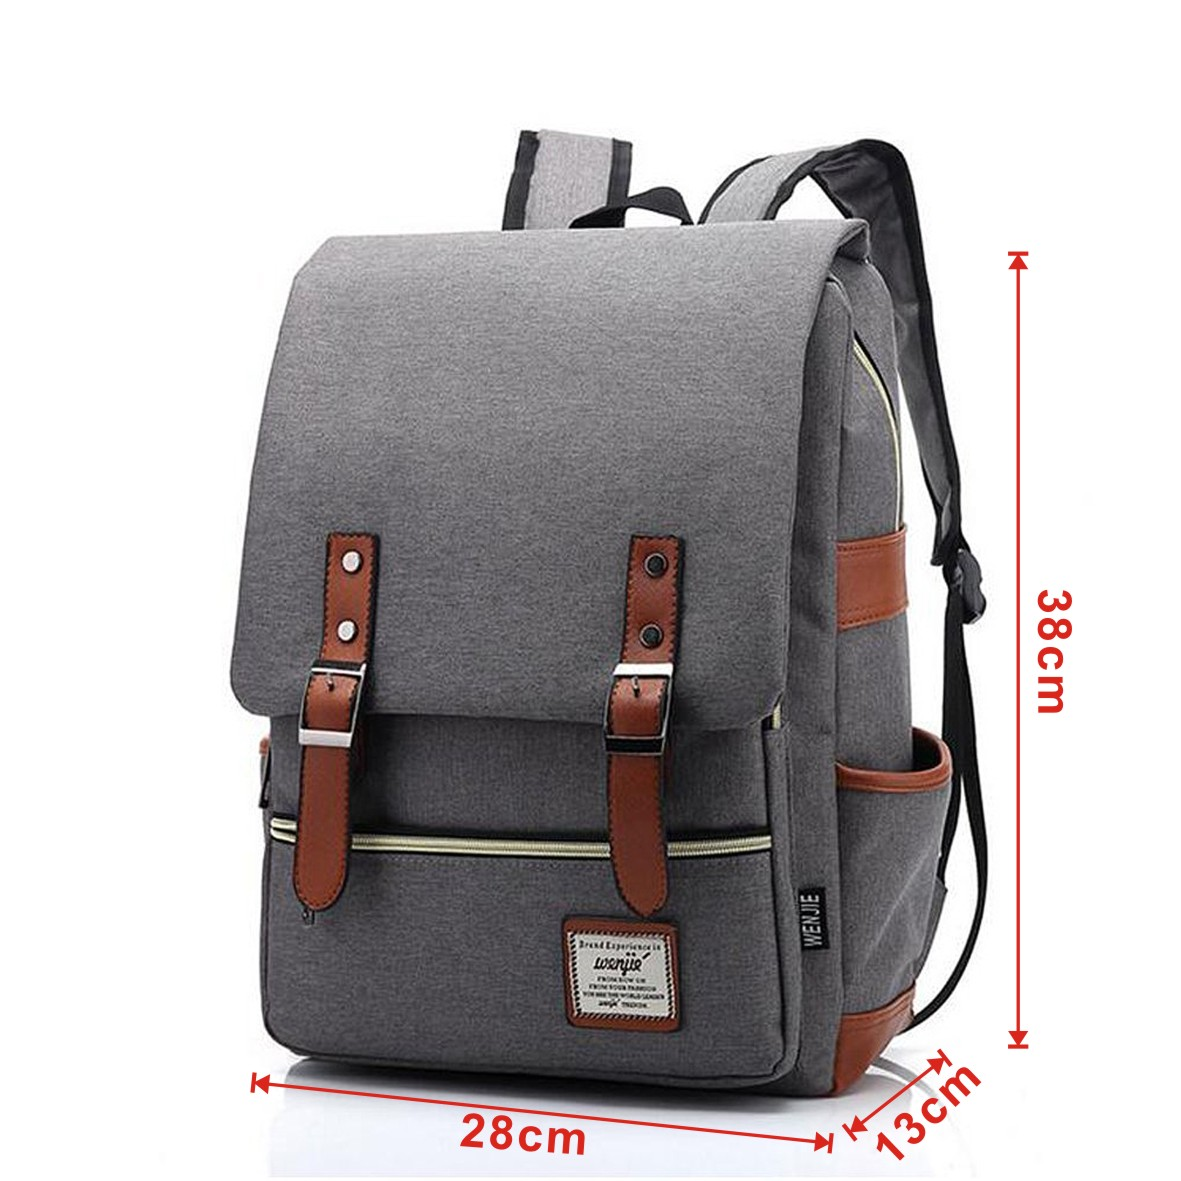 36c58467a67 UK Women Men Shoulder Canvas Backpack Rucksack School Book Travel College  Bag